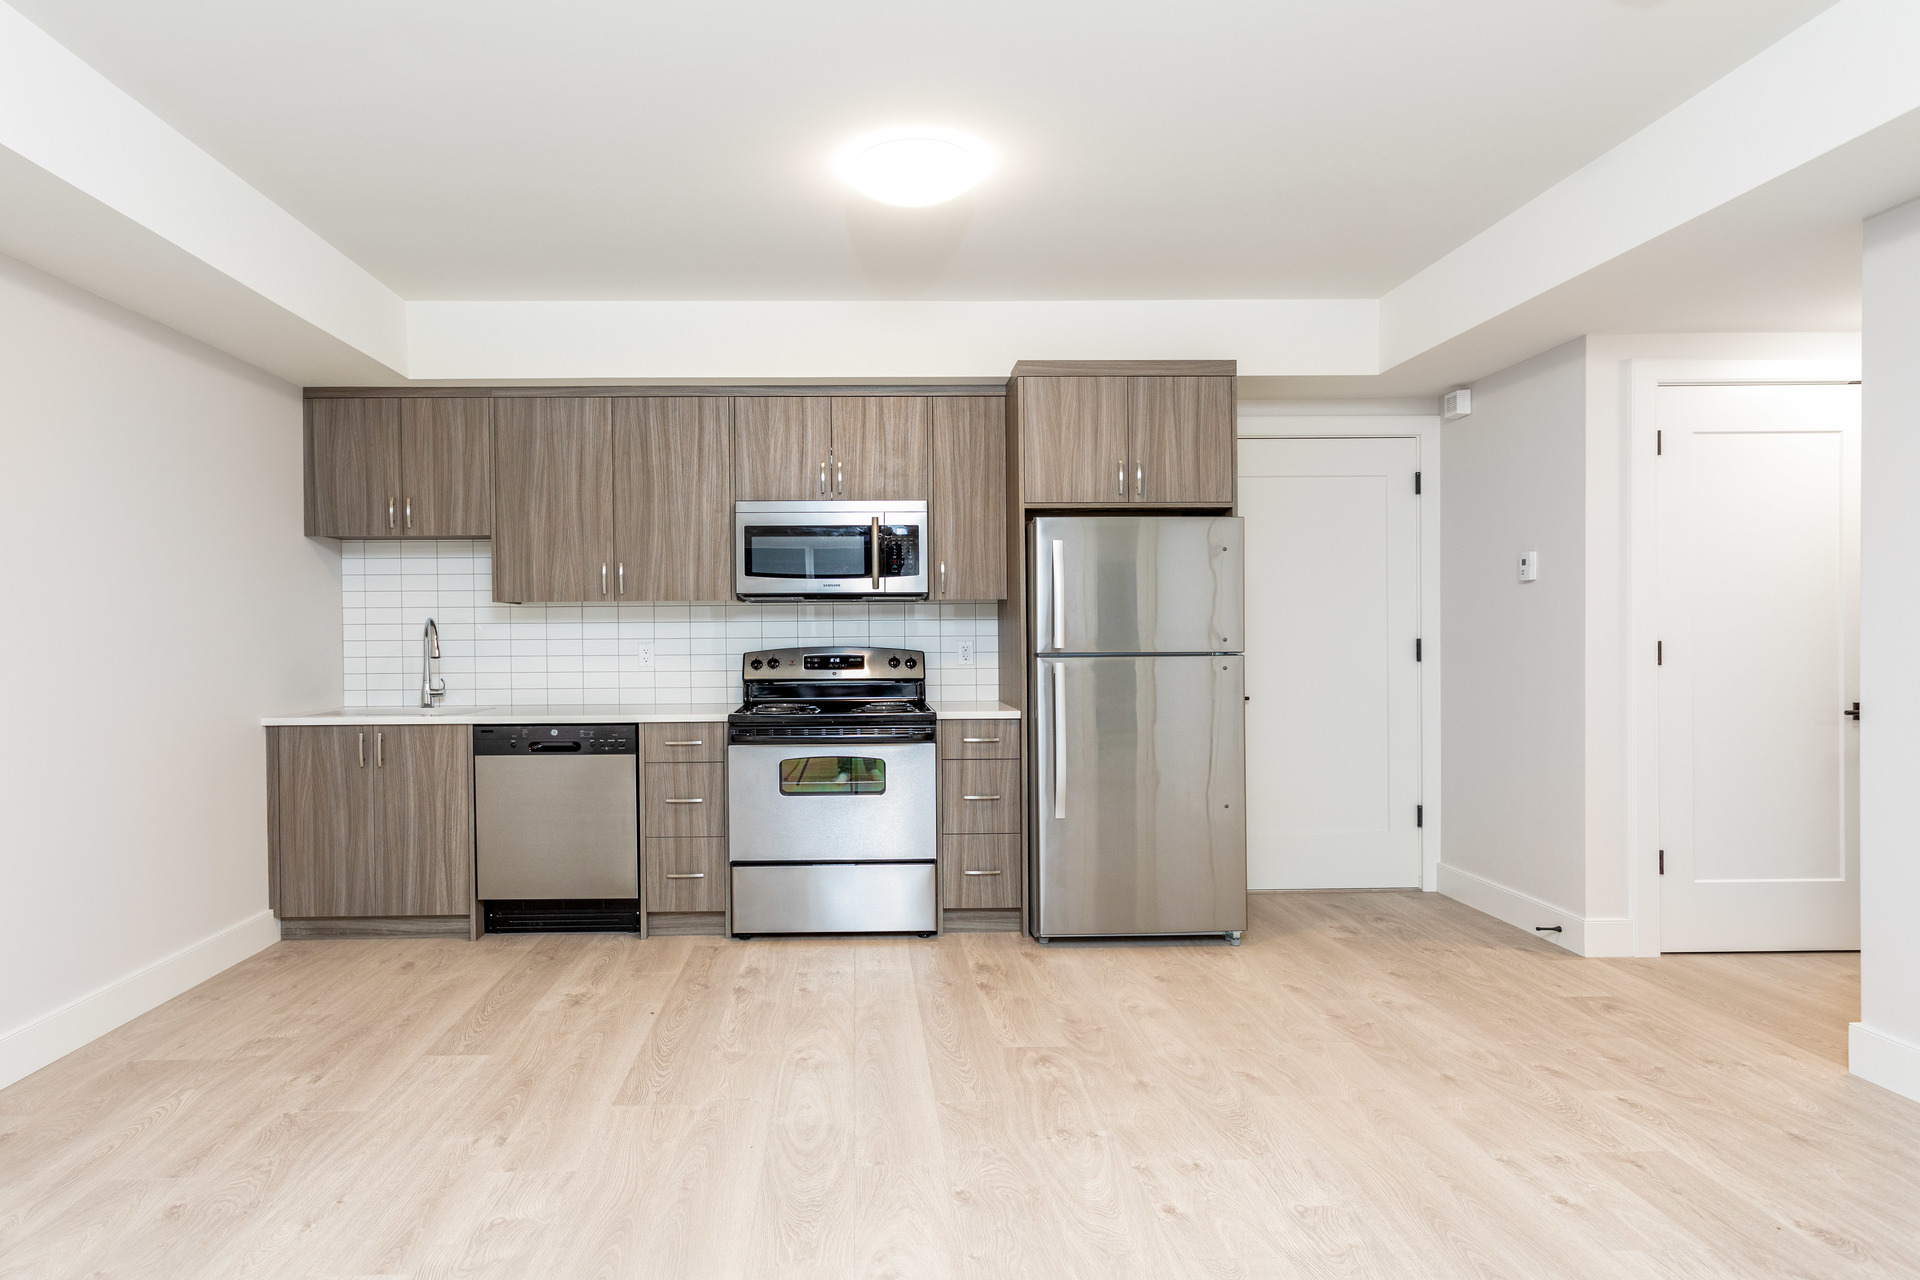 jh22 at 558 Berry Street, Central Coquitlam, Coquitlam